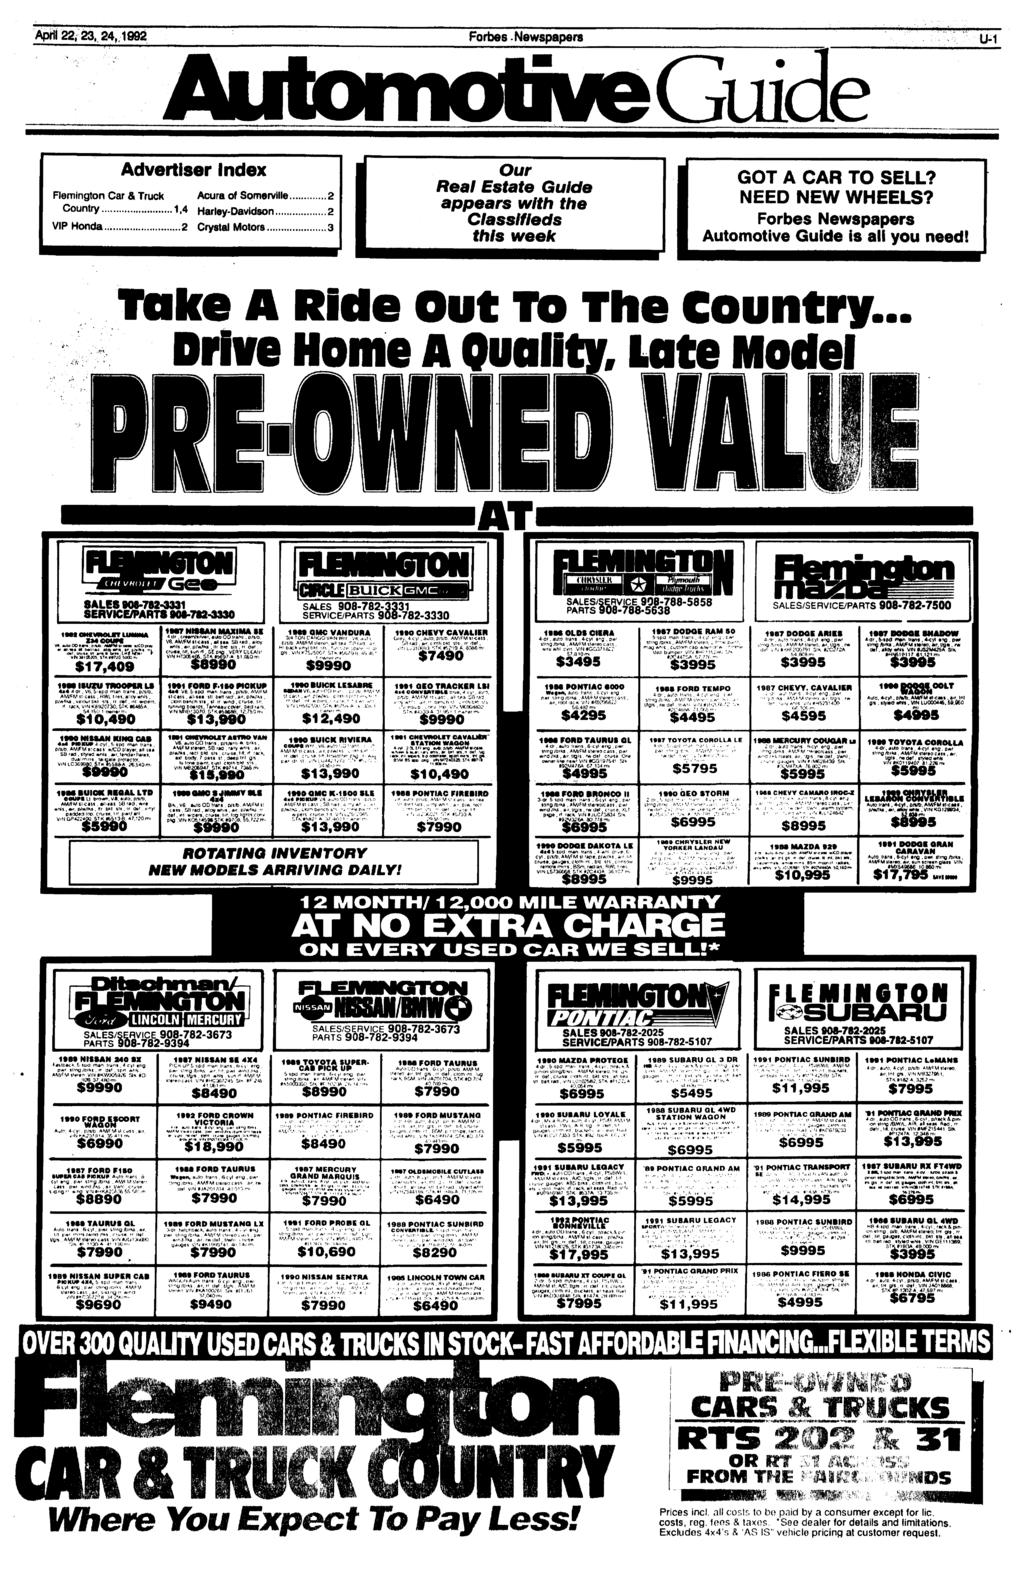 IL April 22, 23, 24,1992 Forbes Newspapers U-1 Guide Advertiser Index Remington Car & Truck Acura of SomervHI 2 Country 1,4 Harley-Davidson 2 VIP Honda.